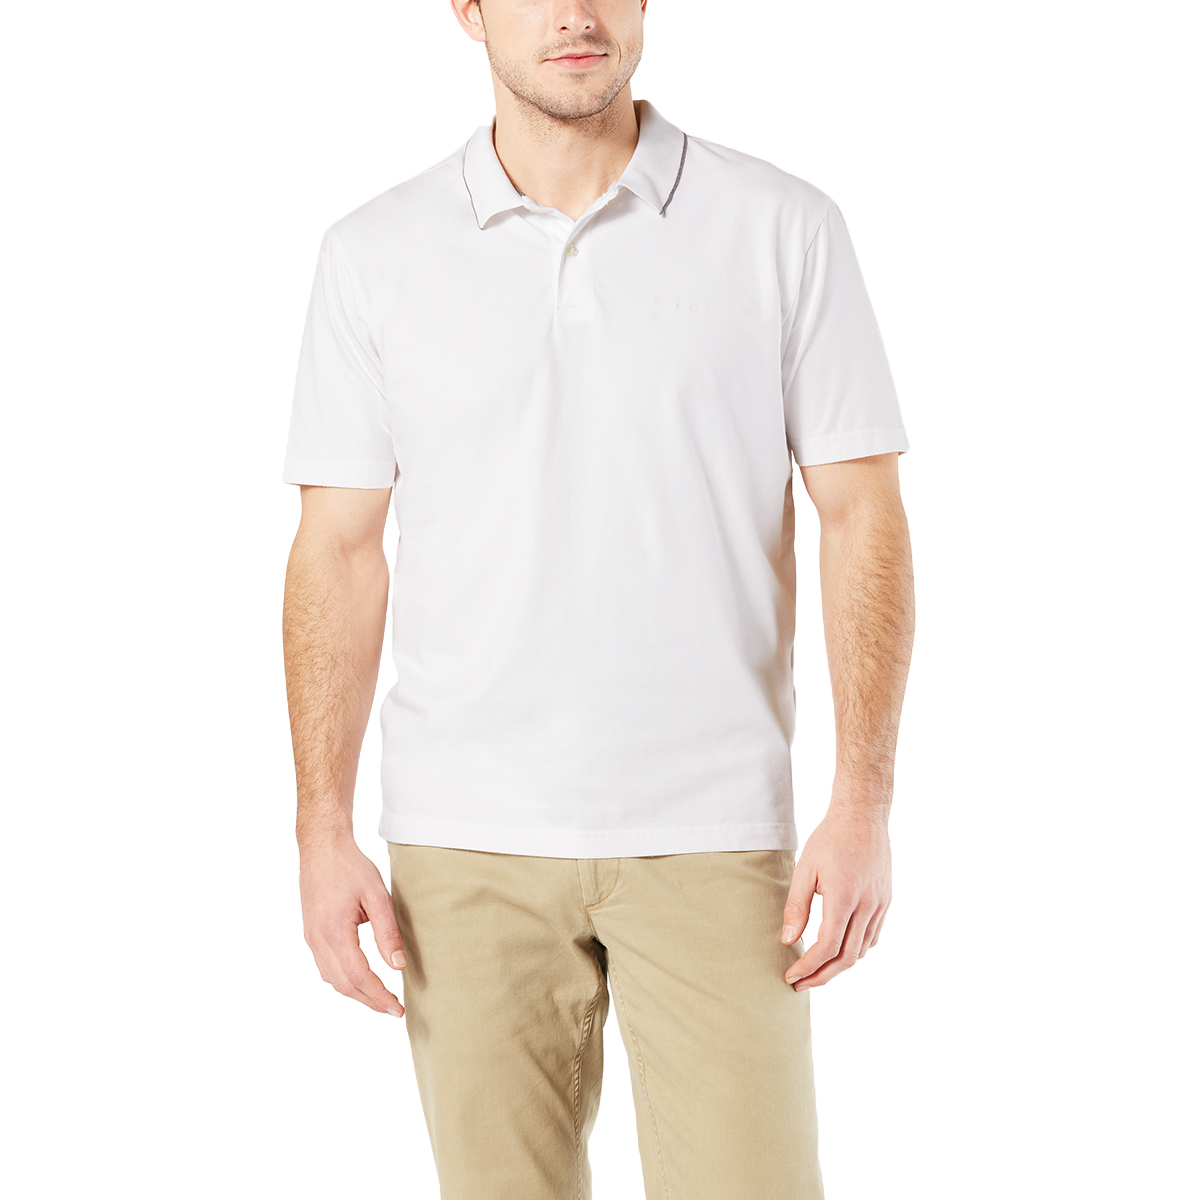 Dockers Men's Performance Short-Sleeve Polo Shirt - White, L